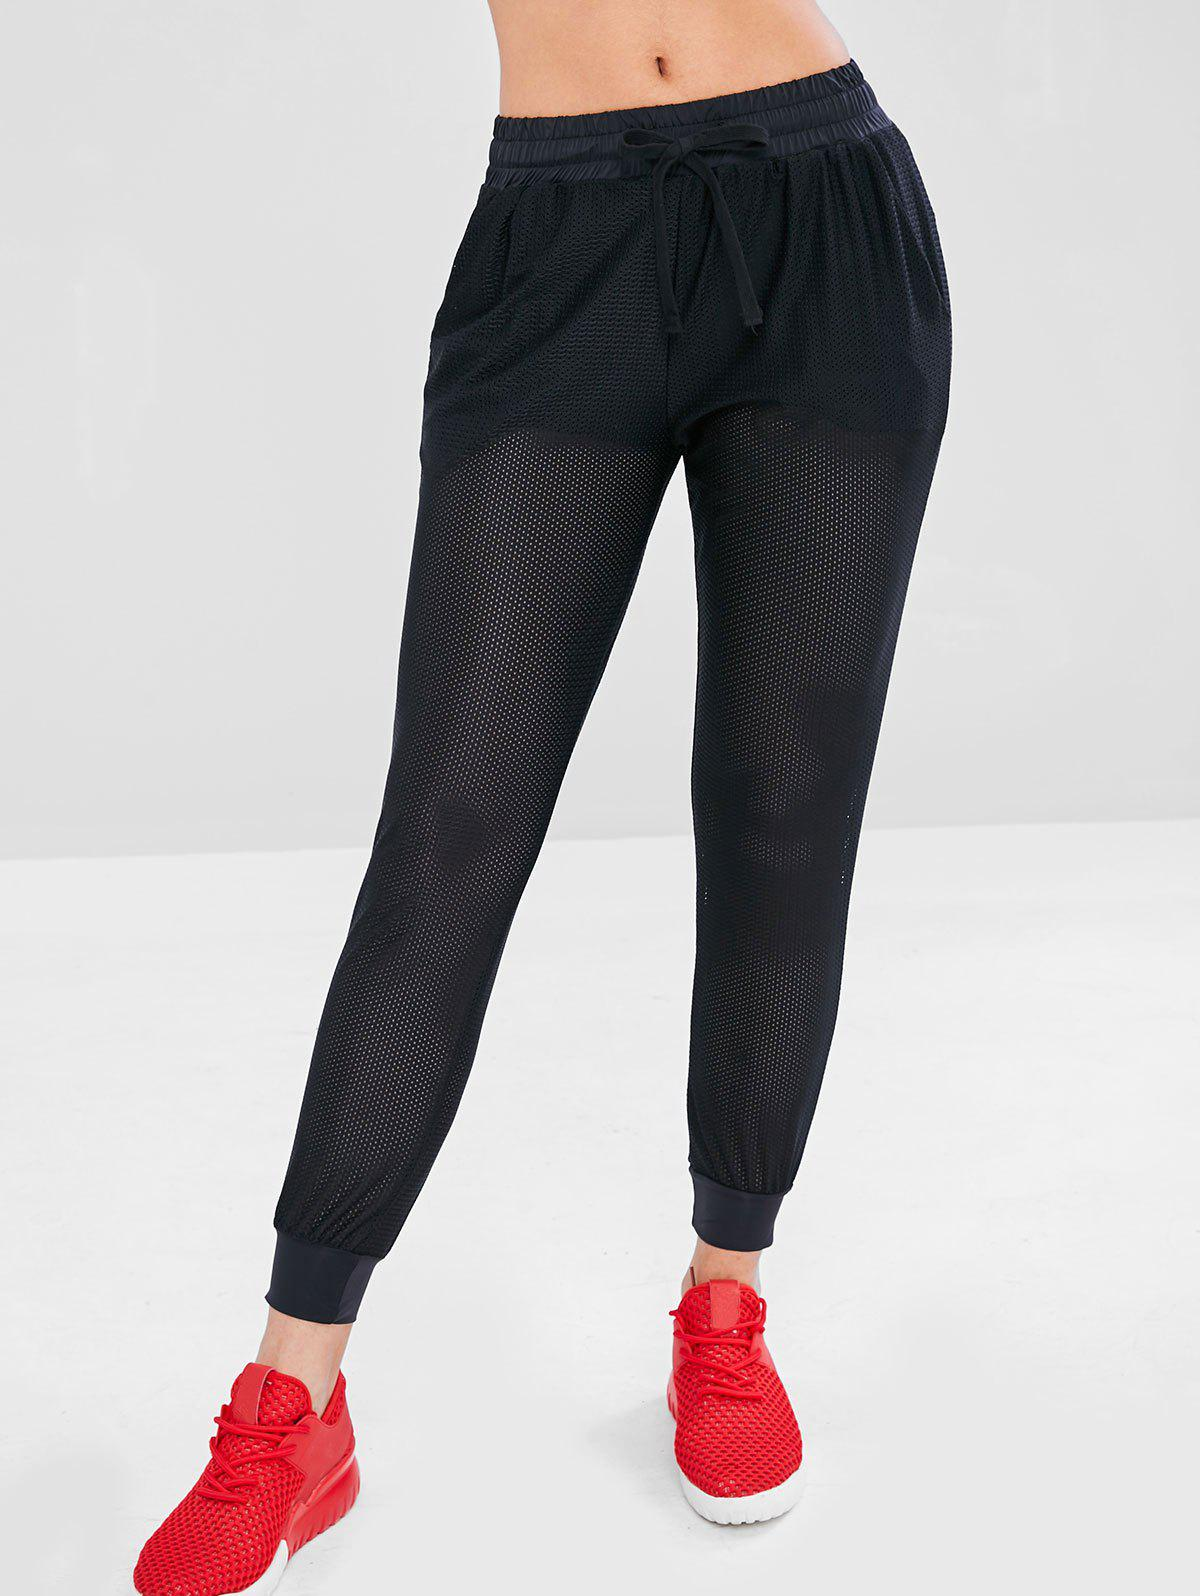 Perforated Sports Pants with Short Lining, Black